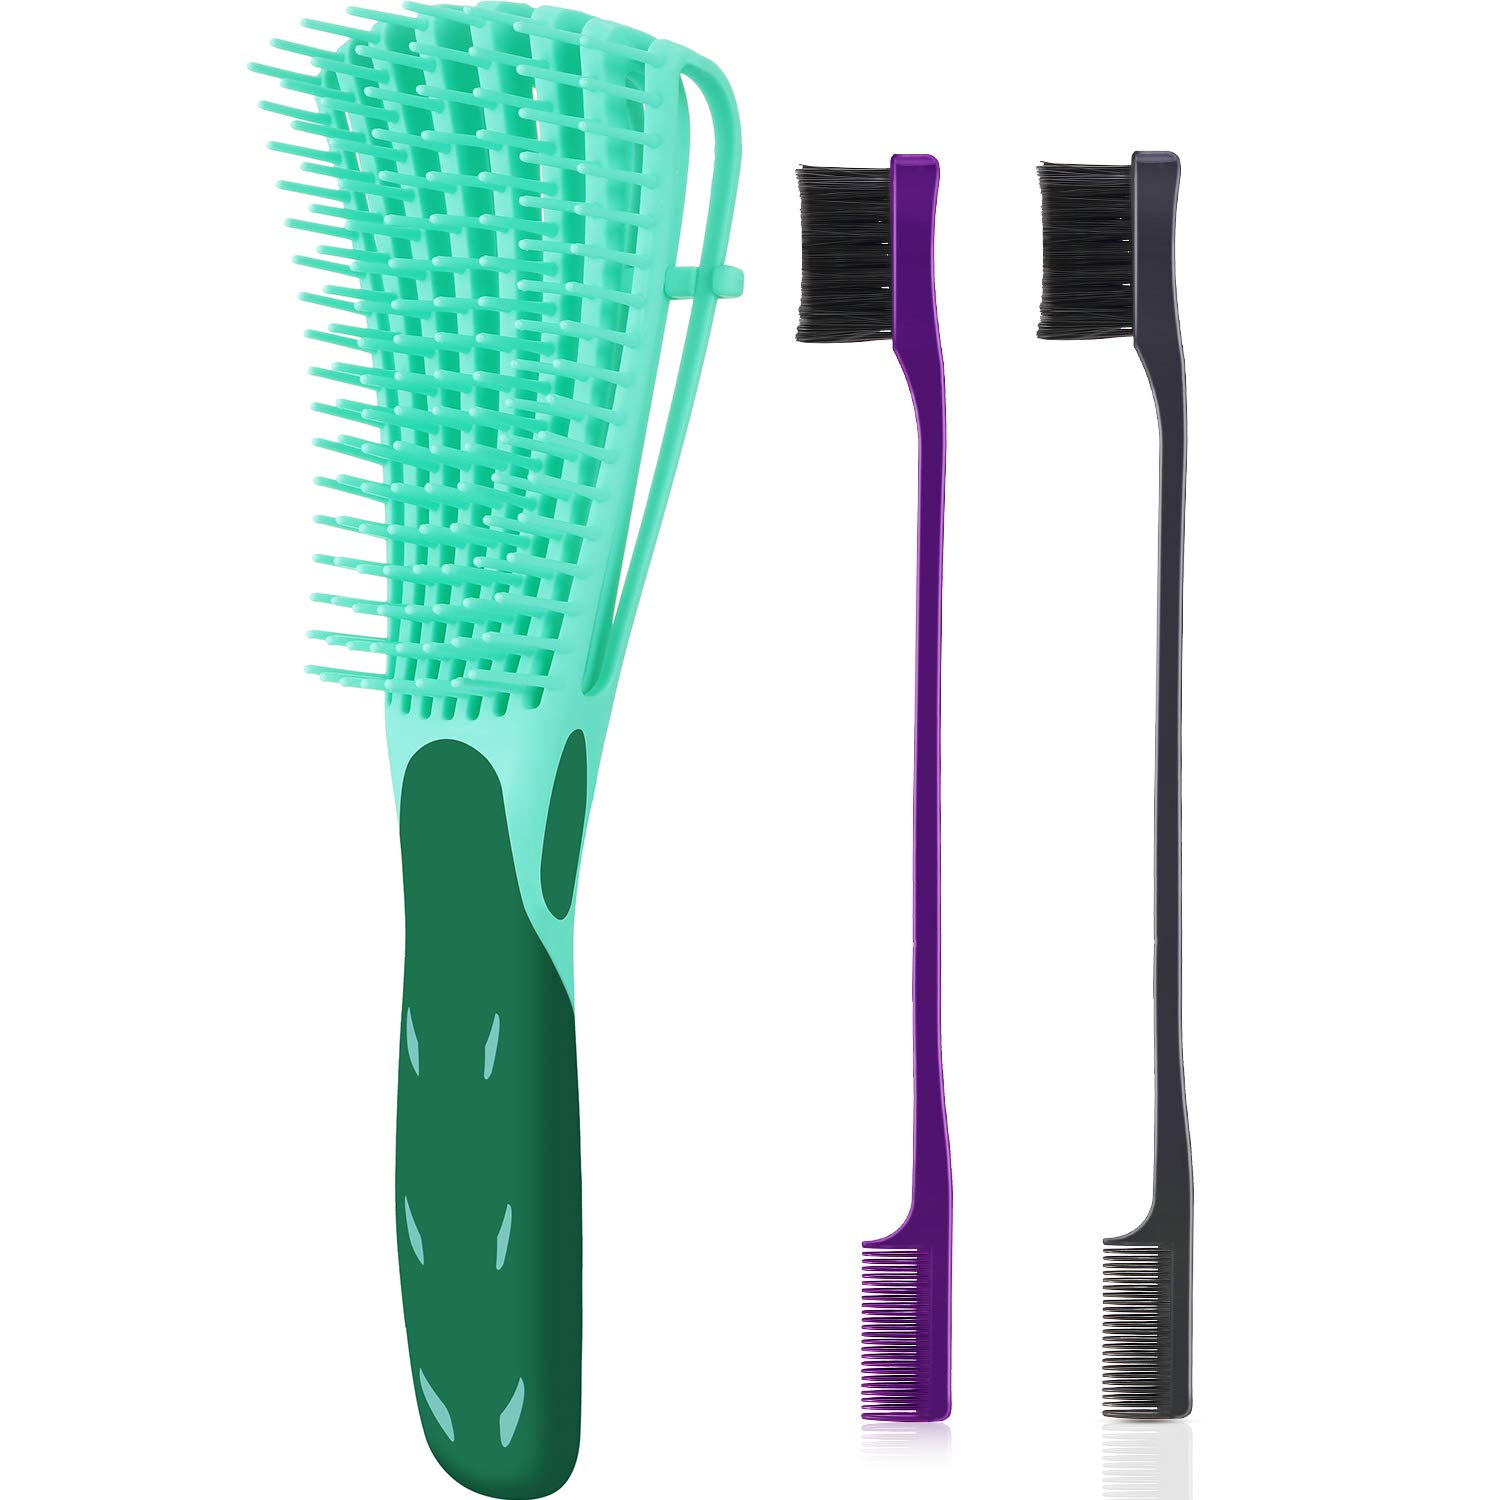 3 Pieces Detangling Brush Set with Edge Brush Double Sided, Hair Detangler for Afro America Textured 3a to 4c Kinky Wavy for Wet/Dry/Long Thick Curly Hair (Green, Purple, Black)